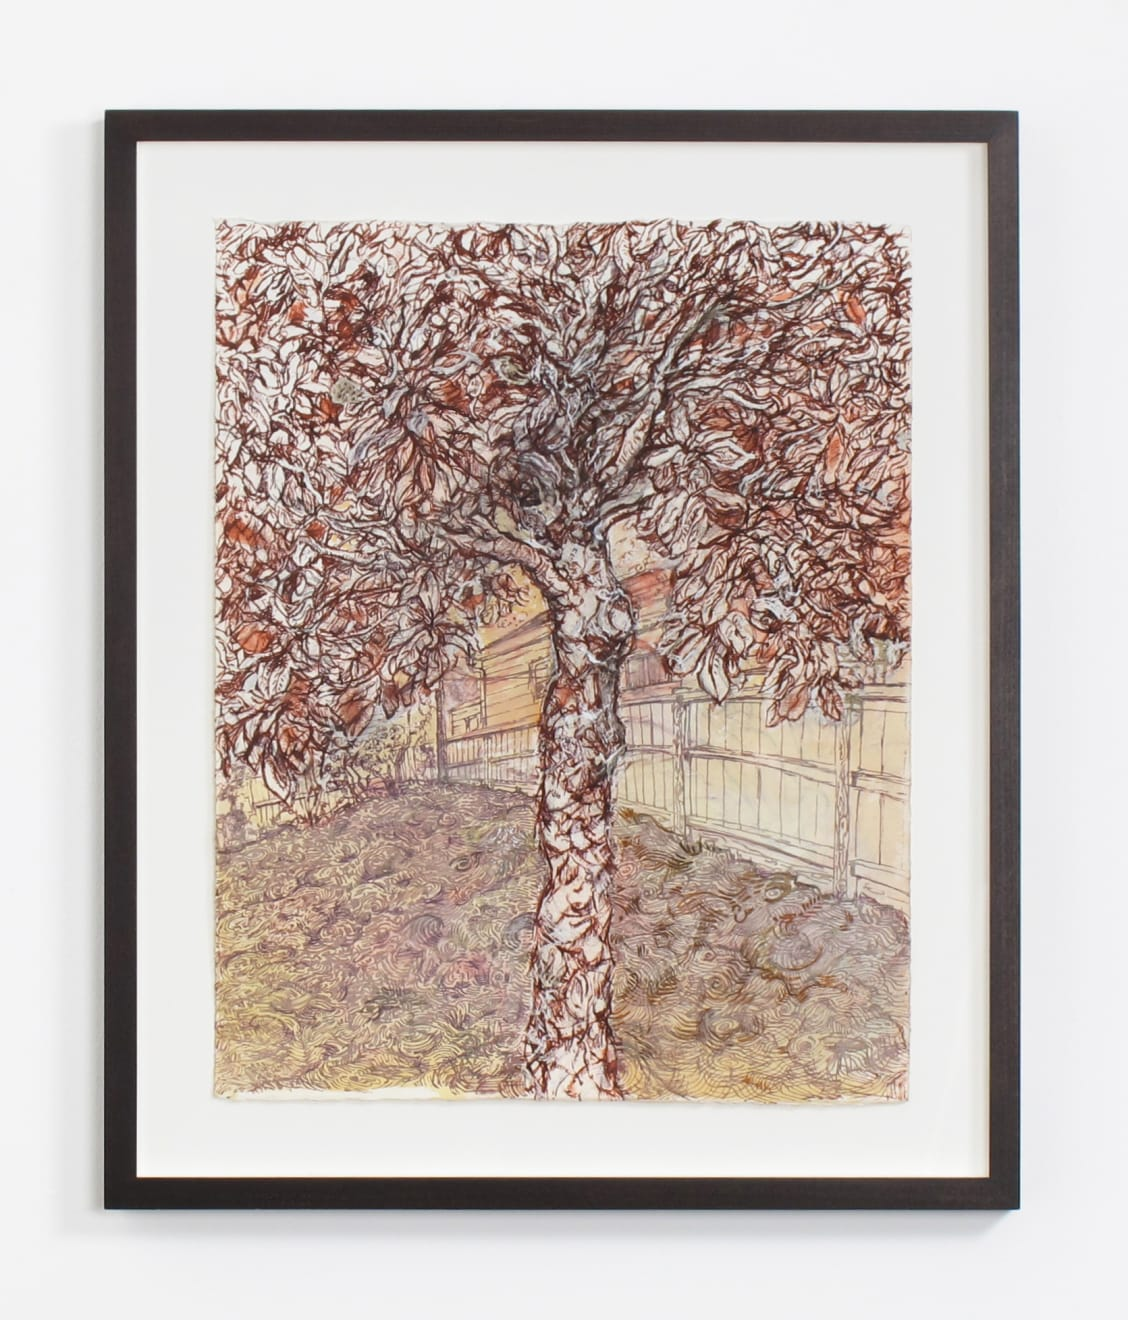 Maria Merrill chooses: Beth Secor, Magnolia, The Drought 2011, 2011 I love the sense of space in this work on paper. The exuberance of the canopy of the Magnolia tree, the slope of the grass and the curve of the fence. It could be any tree, but we know that it isn't, it's this tree. The limited palette reminds me of a sepia toned old photograph which plays with my idea of time - are we in the present or the past? And then Beth's line work and the layering of the watercolor, ink, white out and pencil keep me interested and looking. After spending time with this piece, I pay more attention to trees, texture, grass and other small things when I go out on my walk. Beth reminds me to pay attention to the ordinary and the beauty here. Beth Secor Magnolia, The Drought 2011, 2011 ink, watercolor, whiteout, and pencil on paper 20 1/4 x 16 in (51.4 x 40.6 cm) BS 230 $3,750